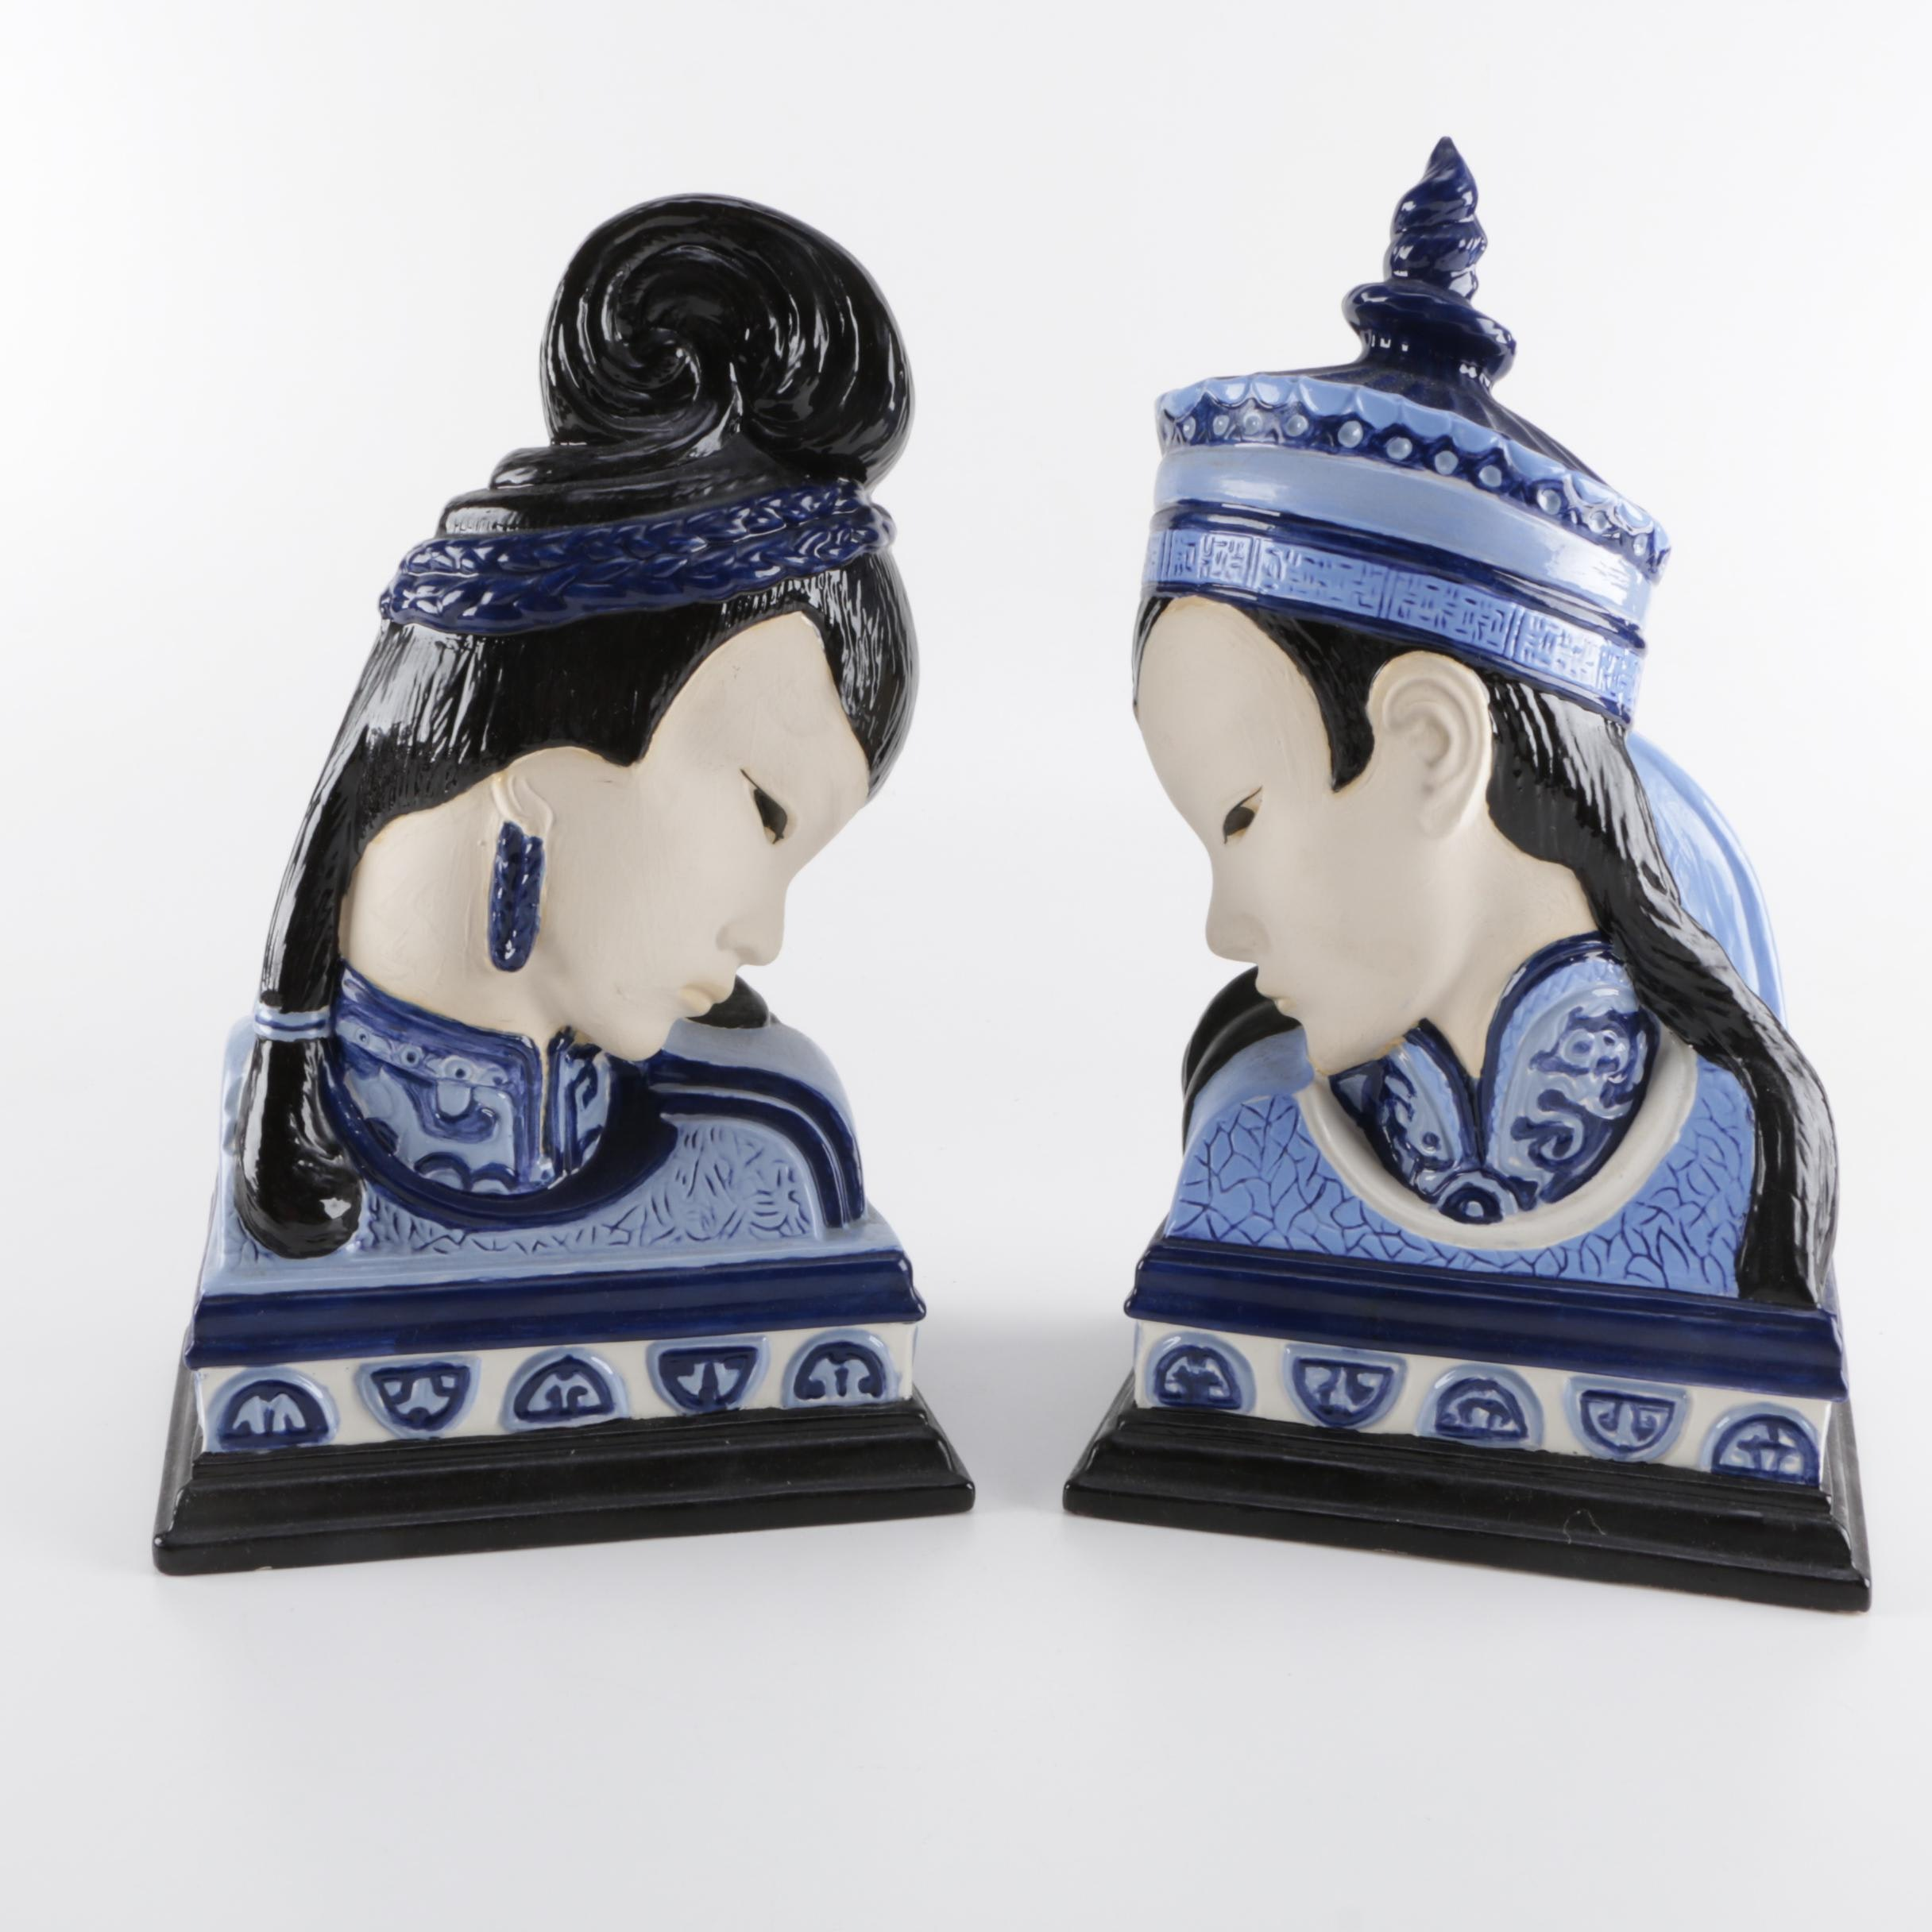 Asian Inspired Ceramic Busts